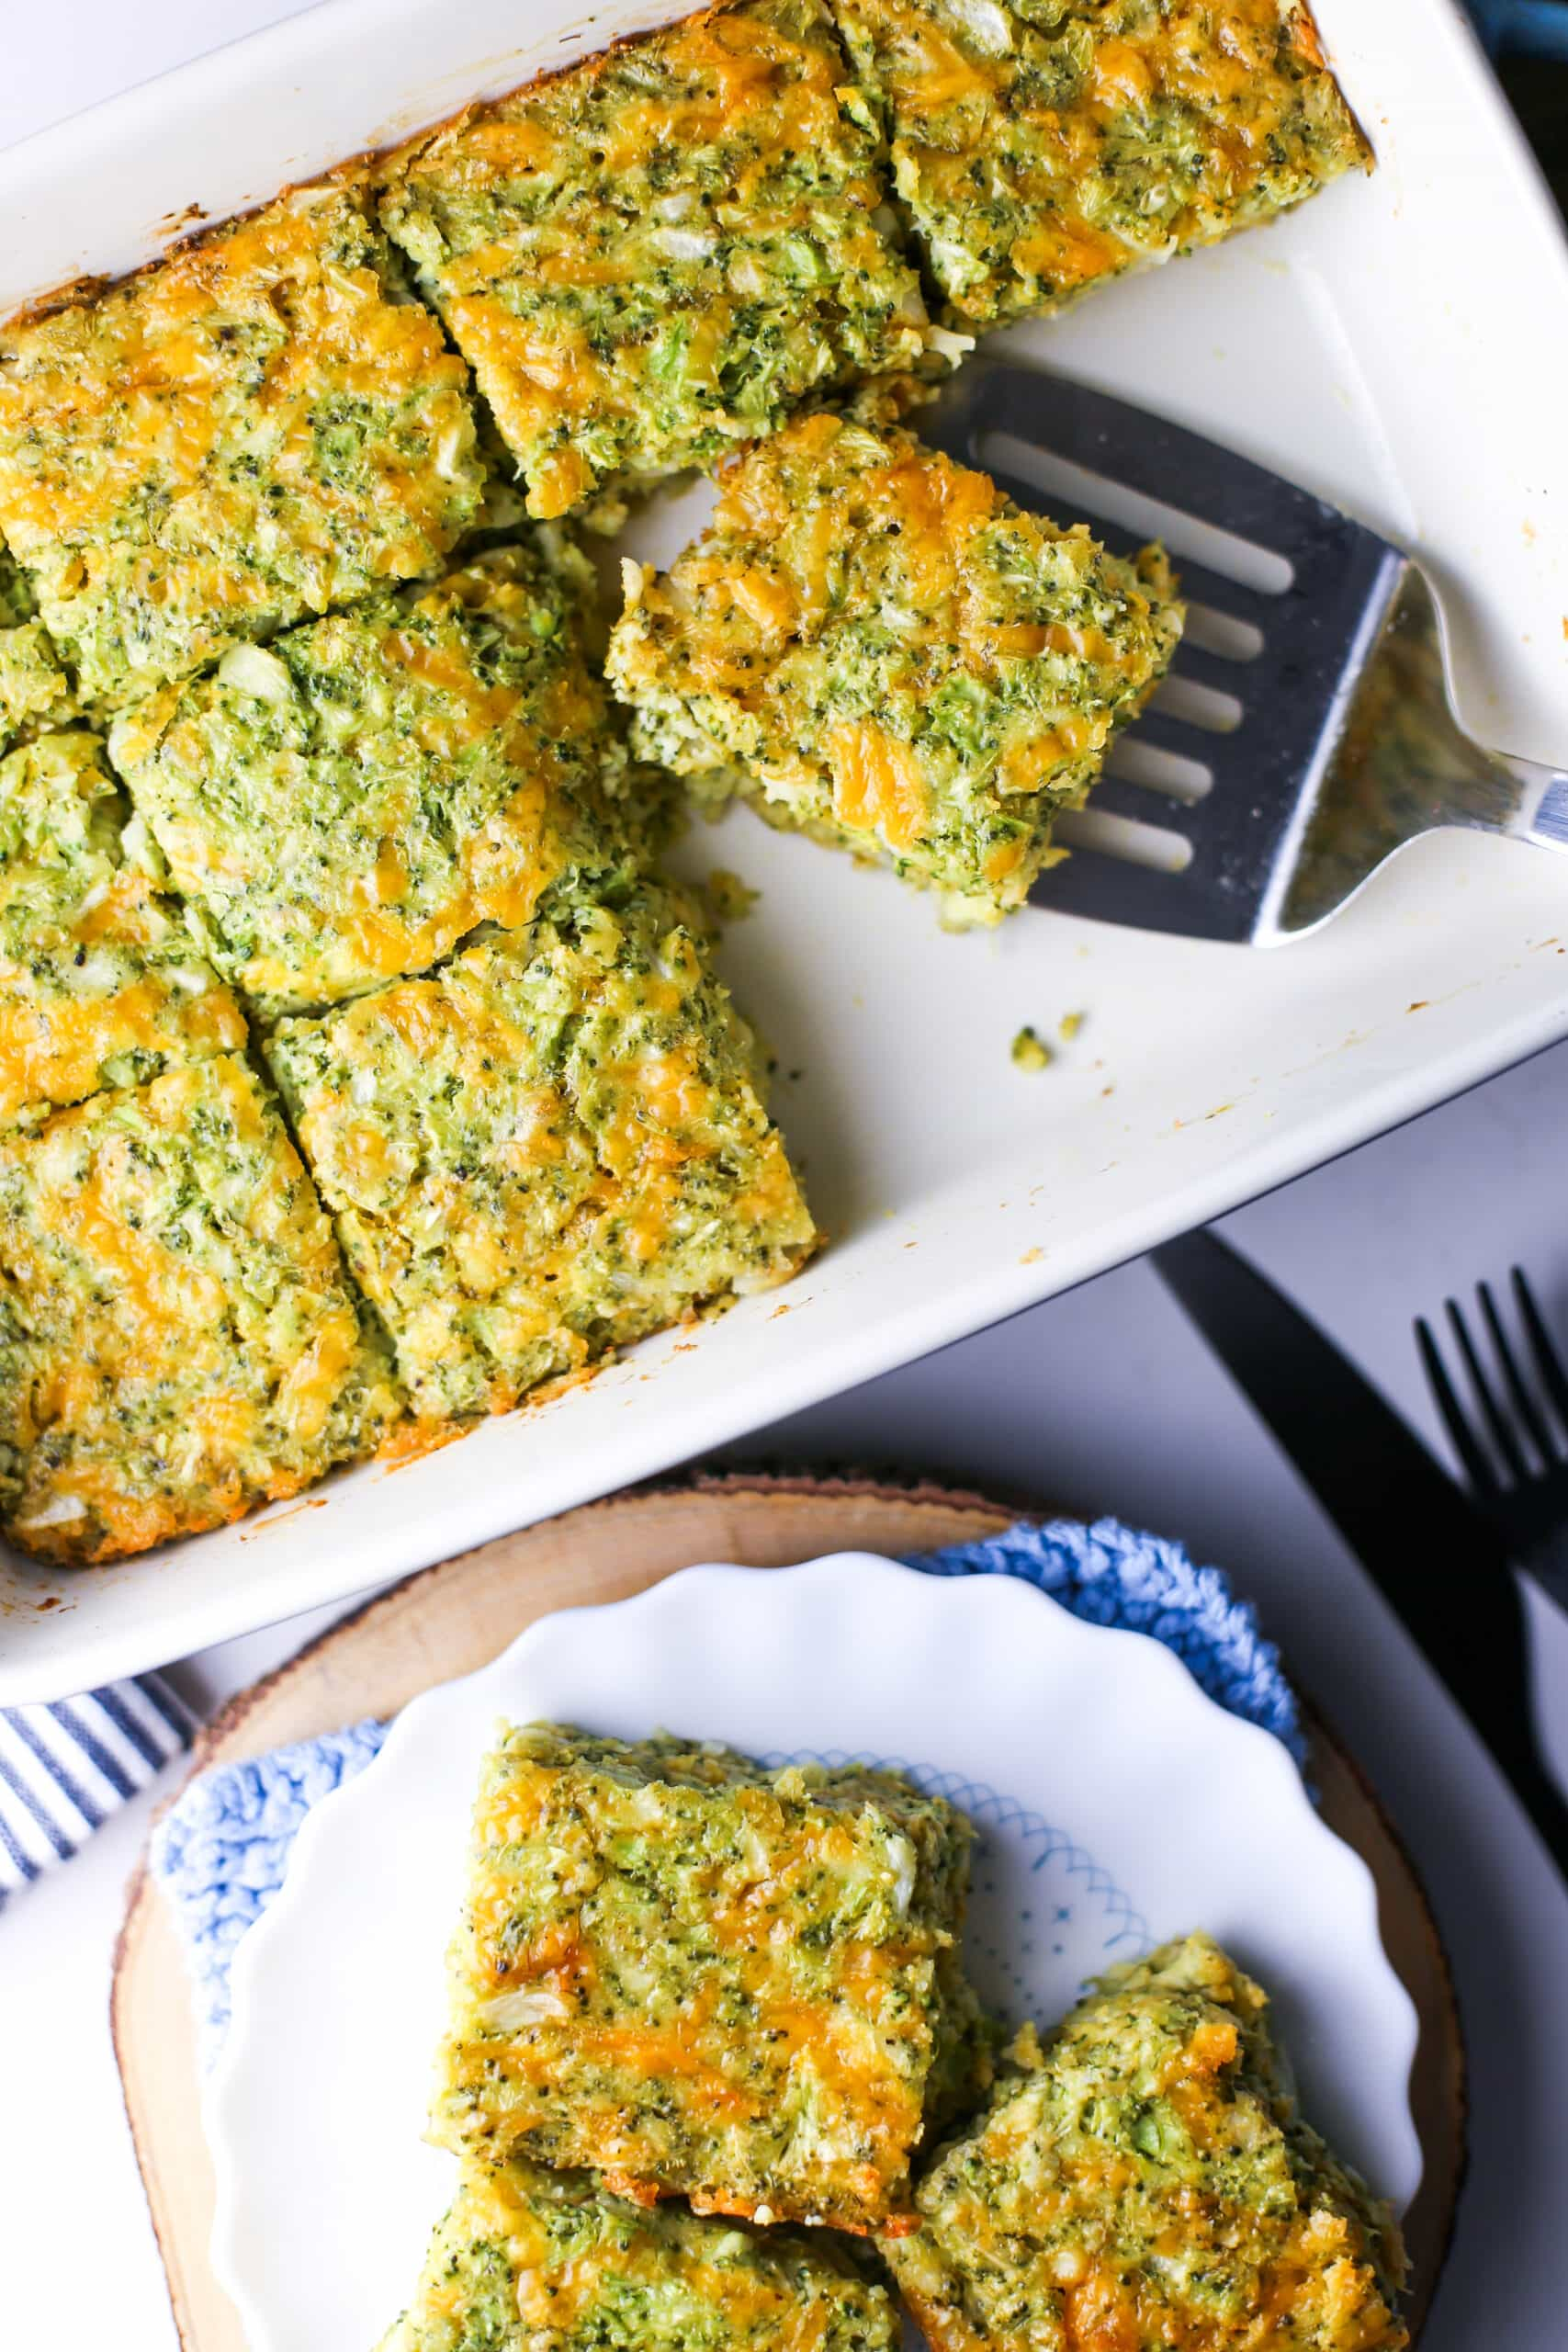 Overhead view of broccoli cheddar squares on a rectangular baking dish and white plate.